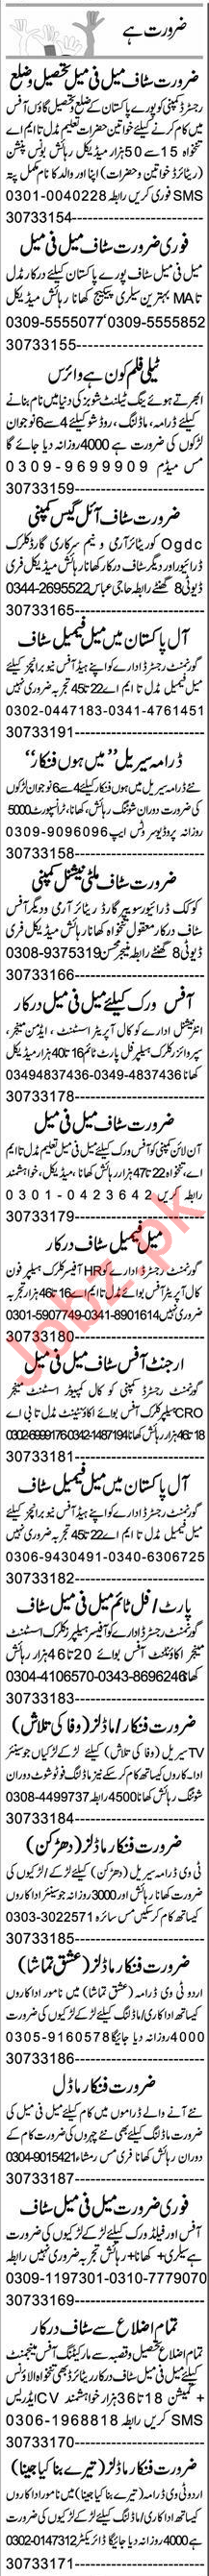 Export Manager & Secretary Jobs 2020 in Lahore